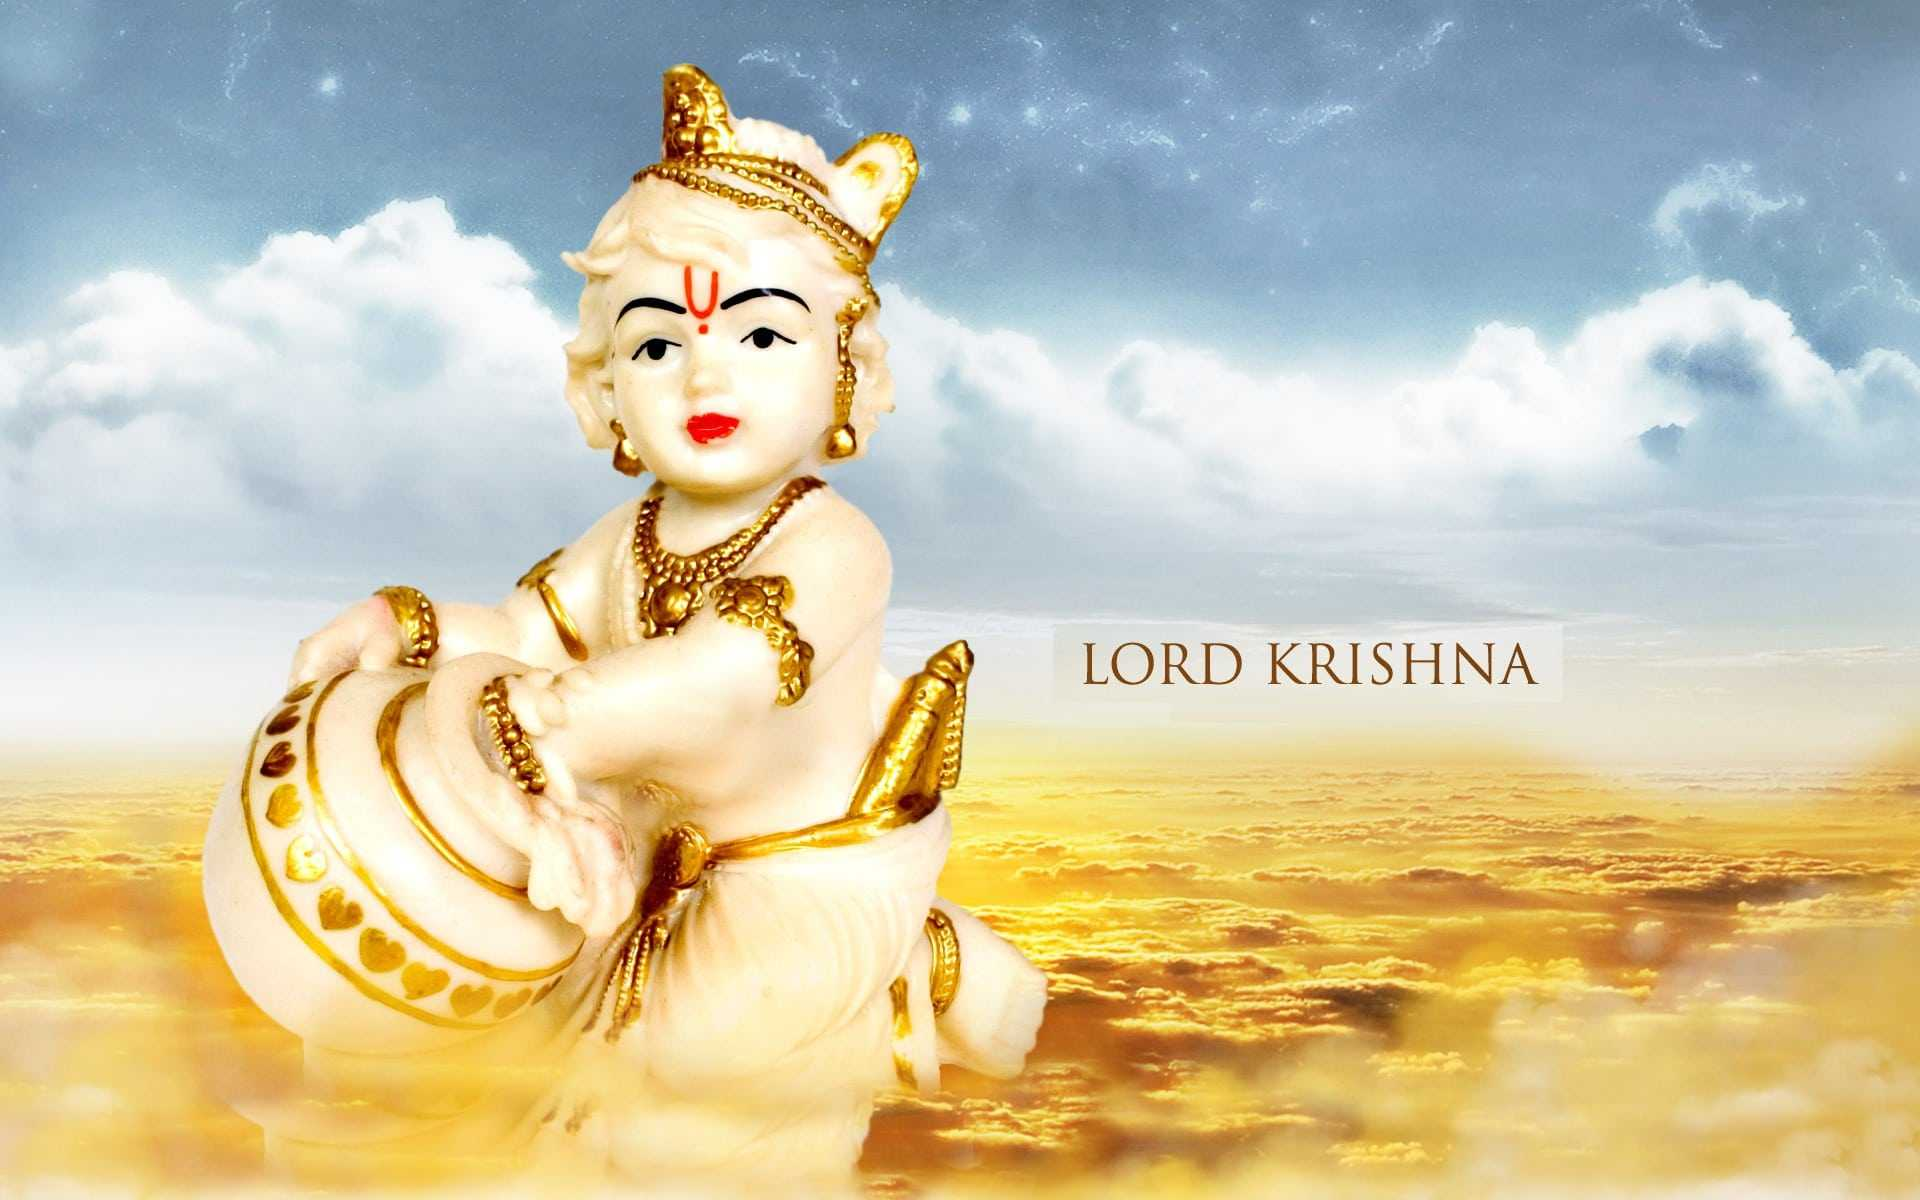 Lord krishna images 2017 childhood hd 1080p free download todayz news - Hd images download ...